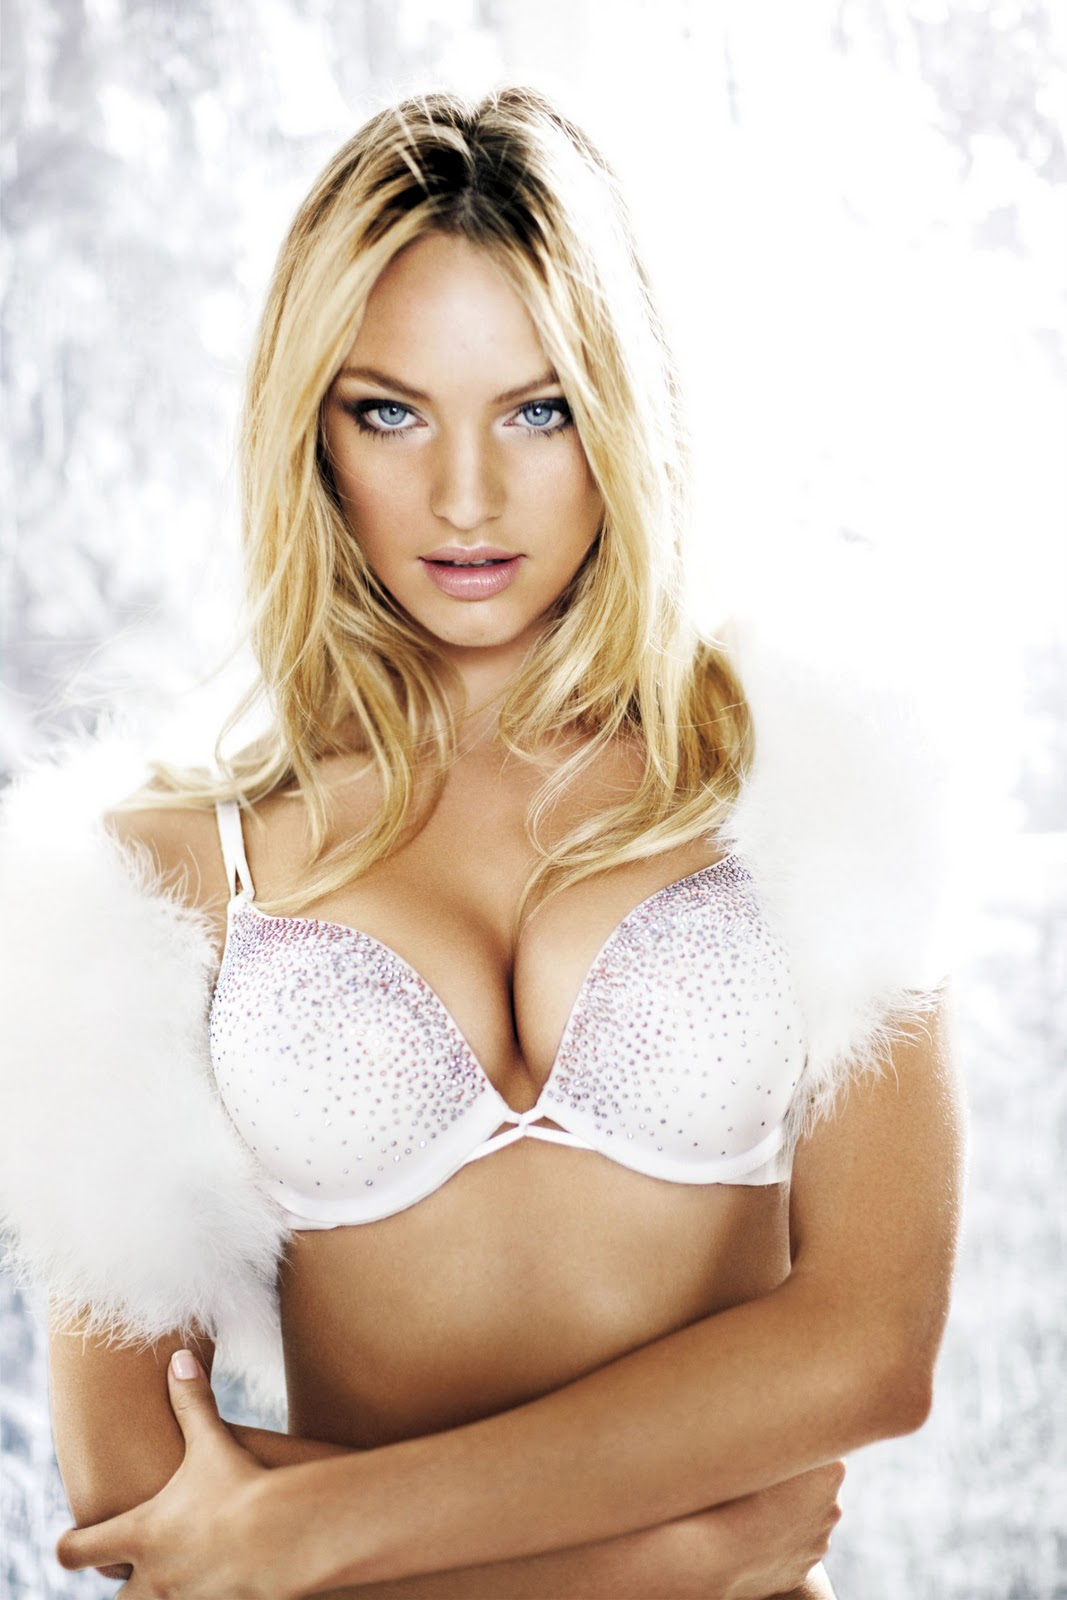 Candice Swanepoel Workout Diet Boxes And Circuit: Candice Swanepoel (VS Holiday 2010 Photo Shoot)